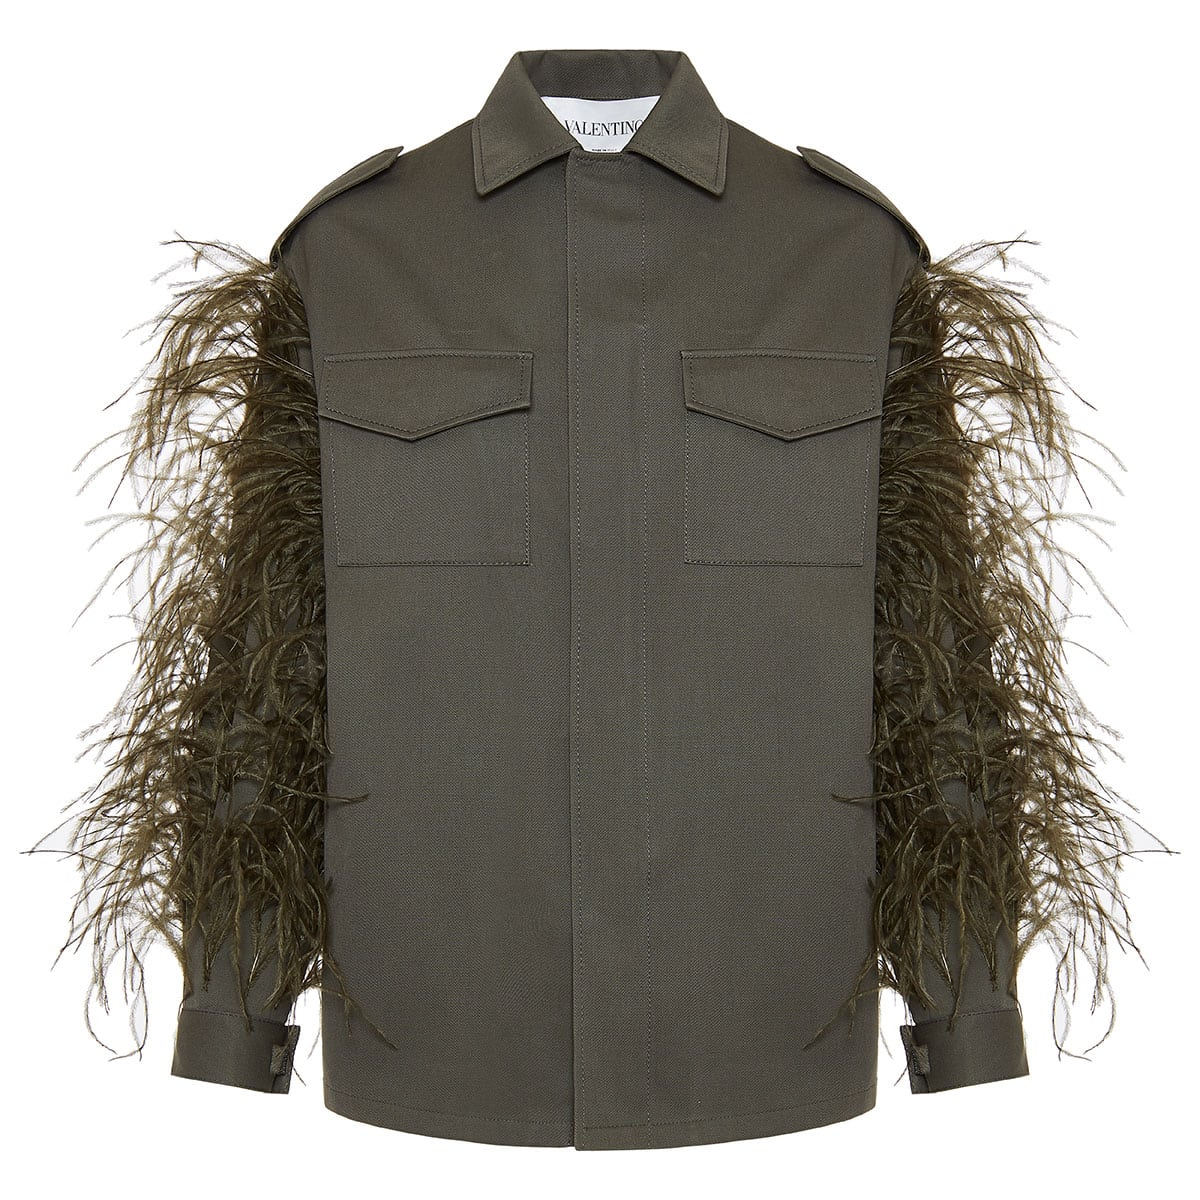 Feather-trimmed utility overshirt